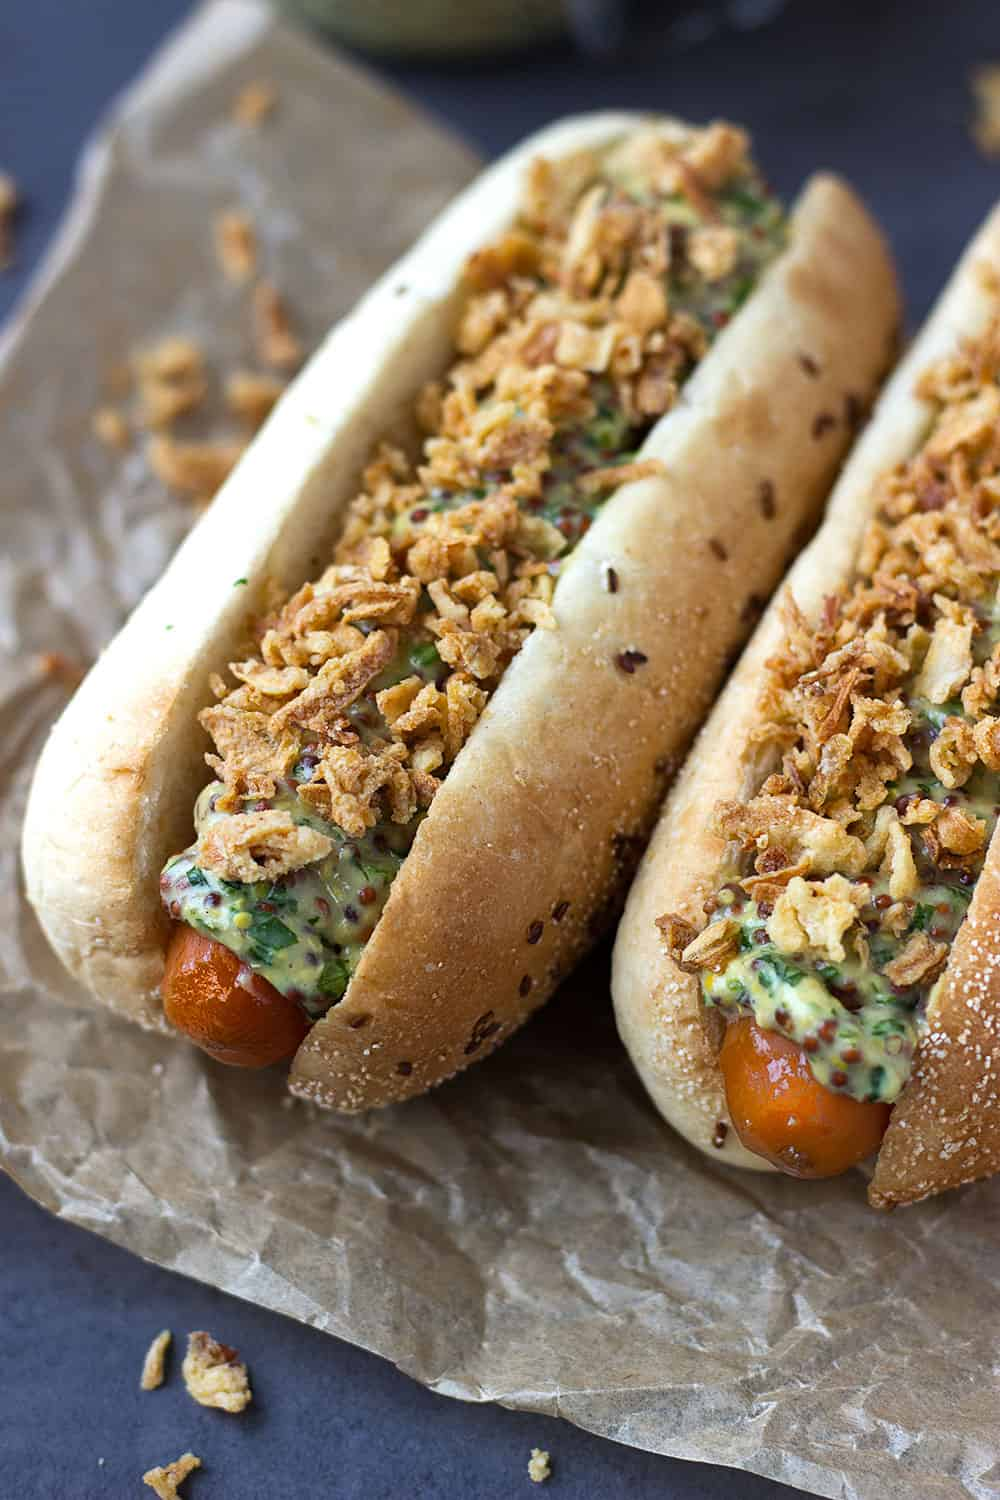 meat-free hot dog